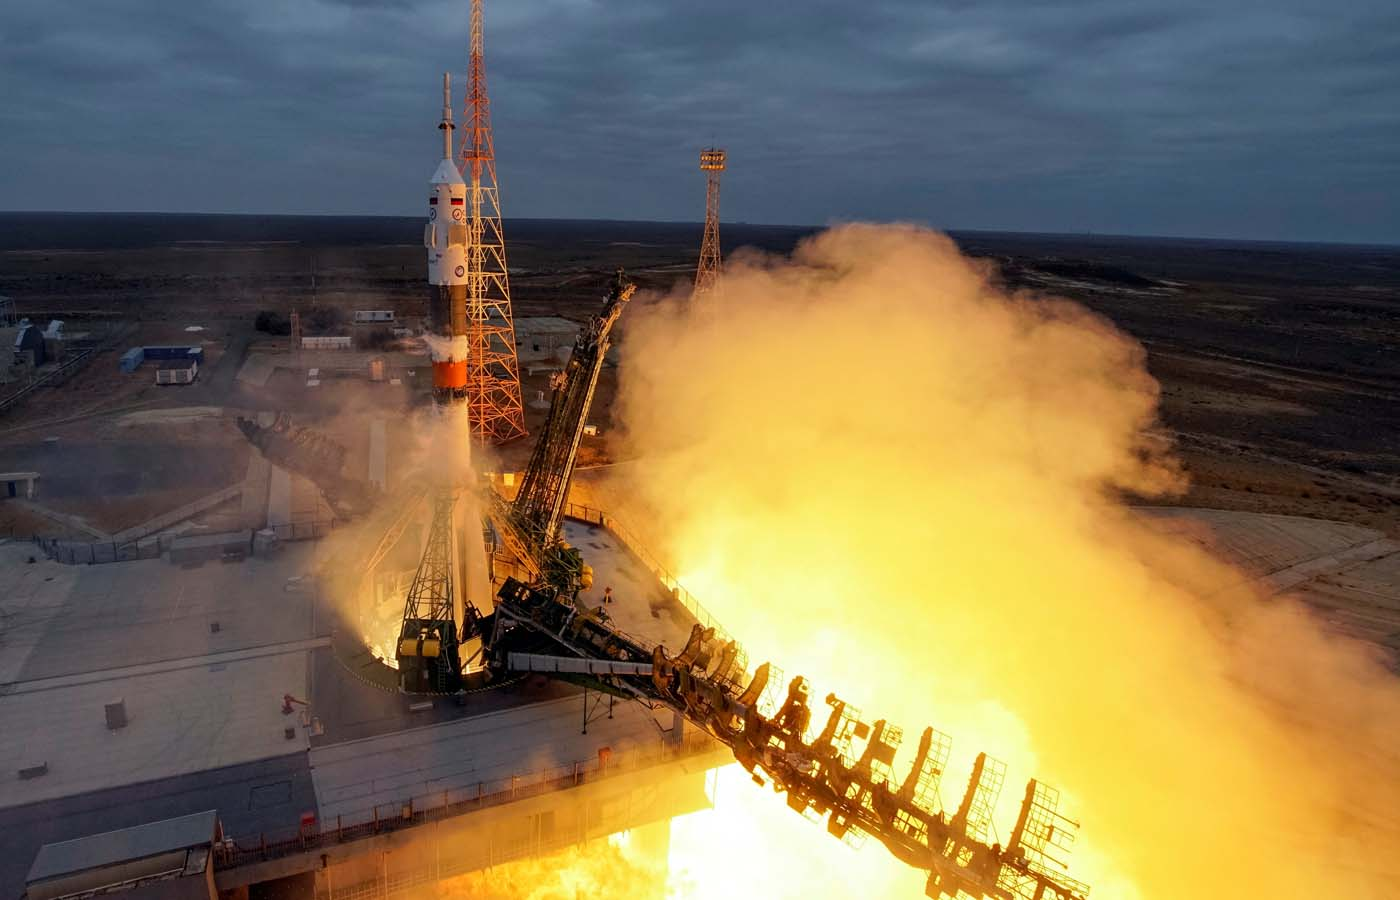 2016-10-19T112833Z_345974989_D1BEUHWAOVAB_RTRMADP_3_SPACE-STATION-LAUNCH